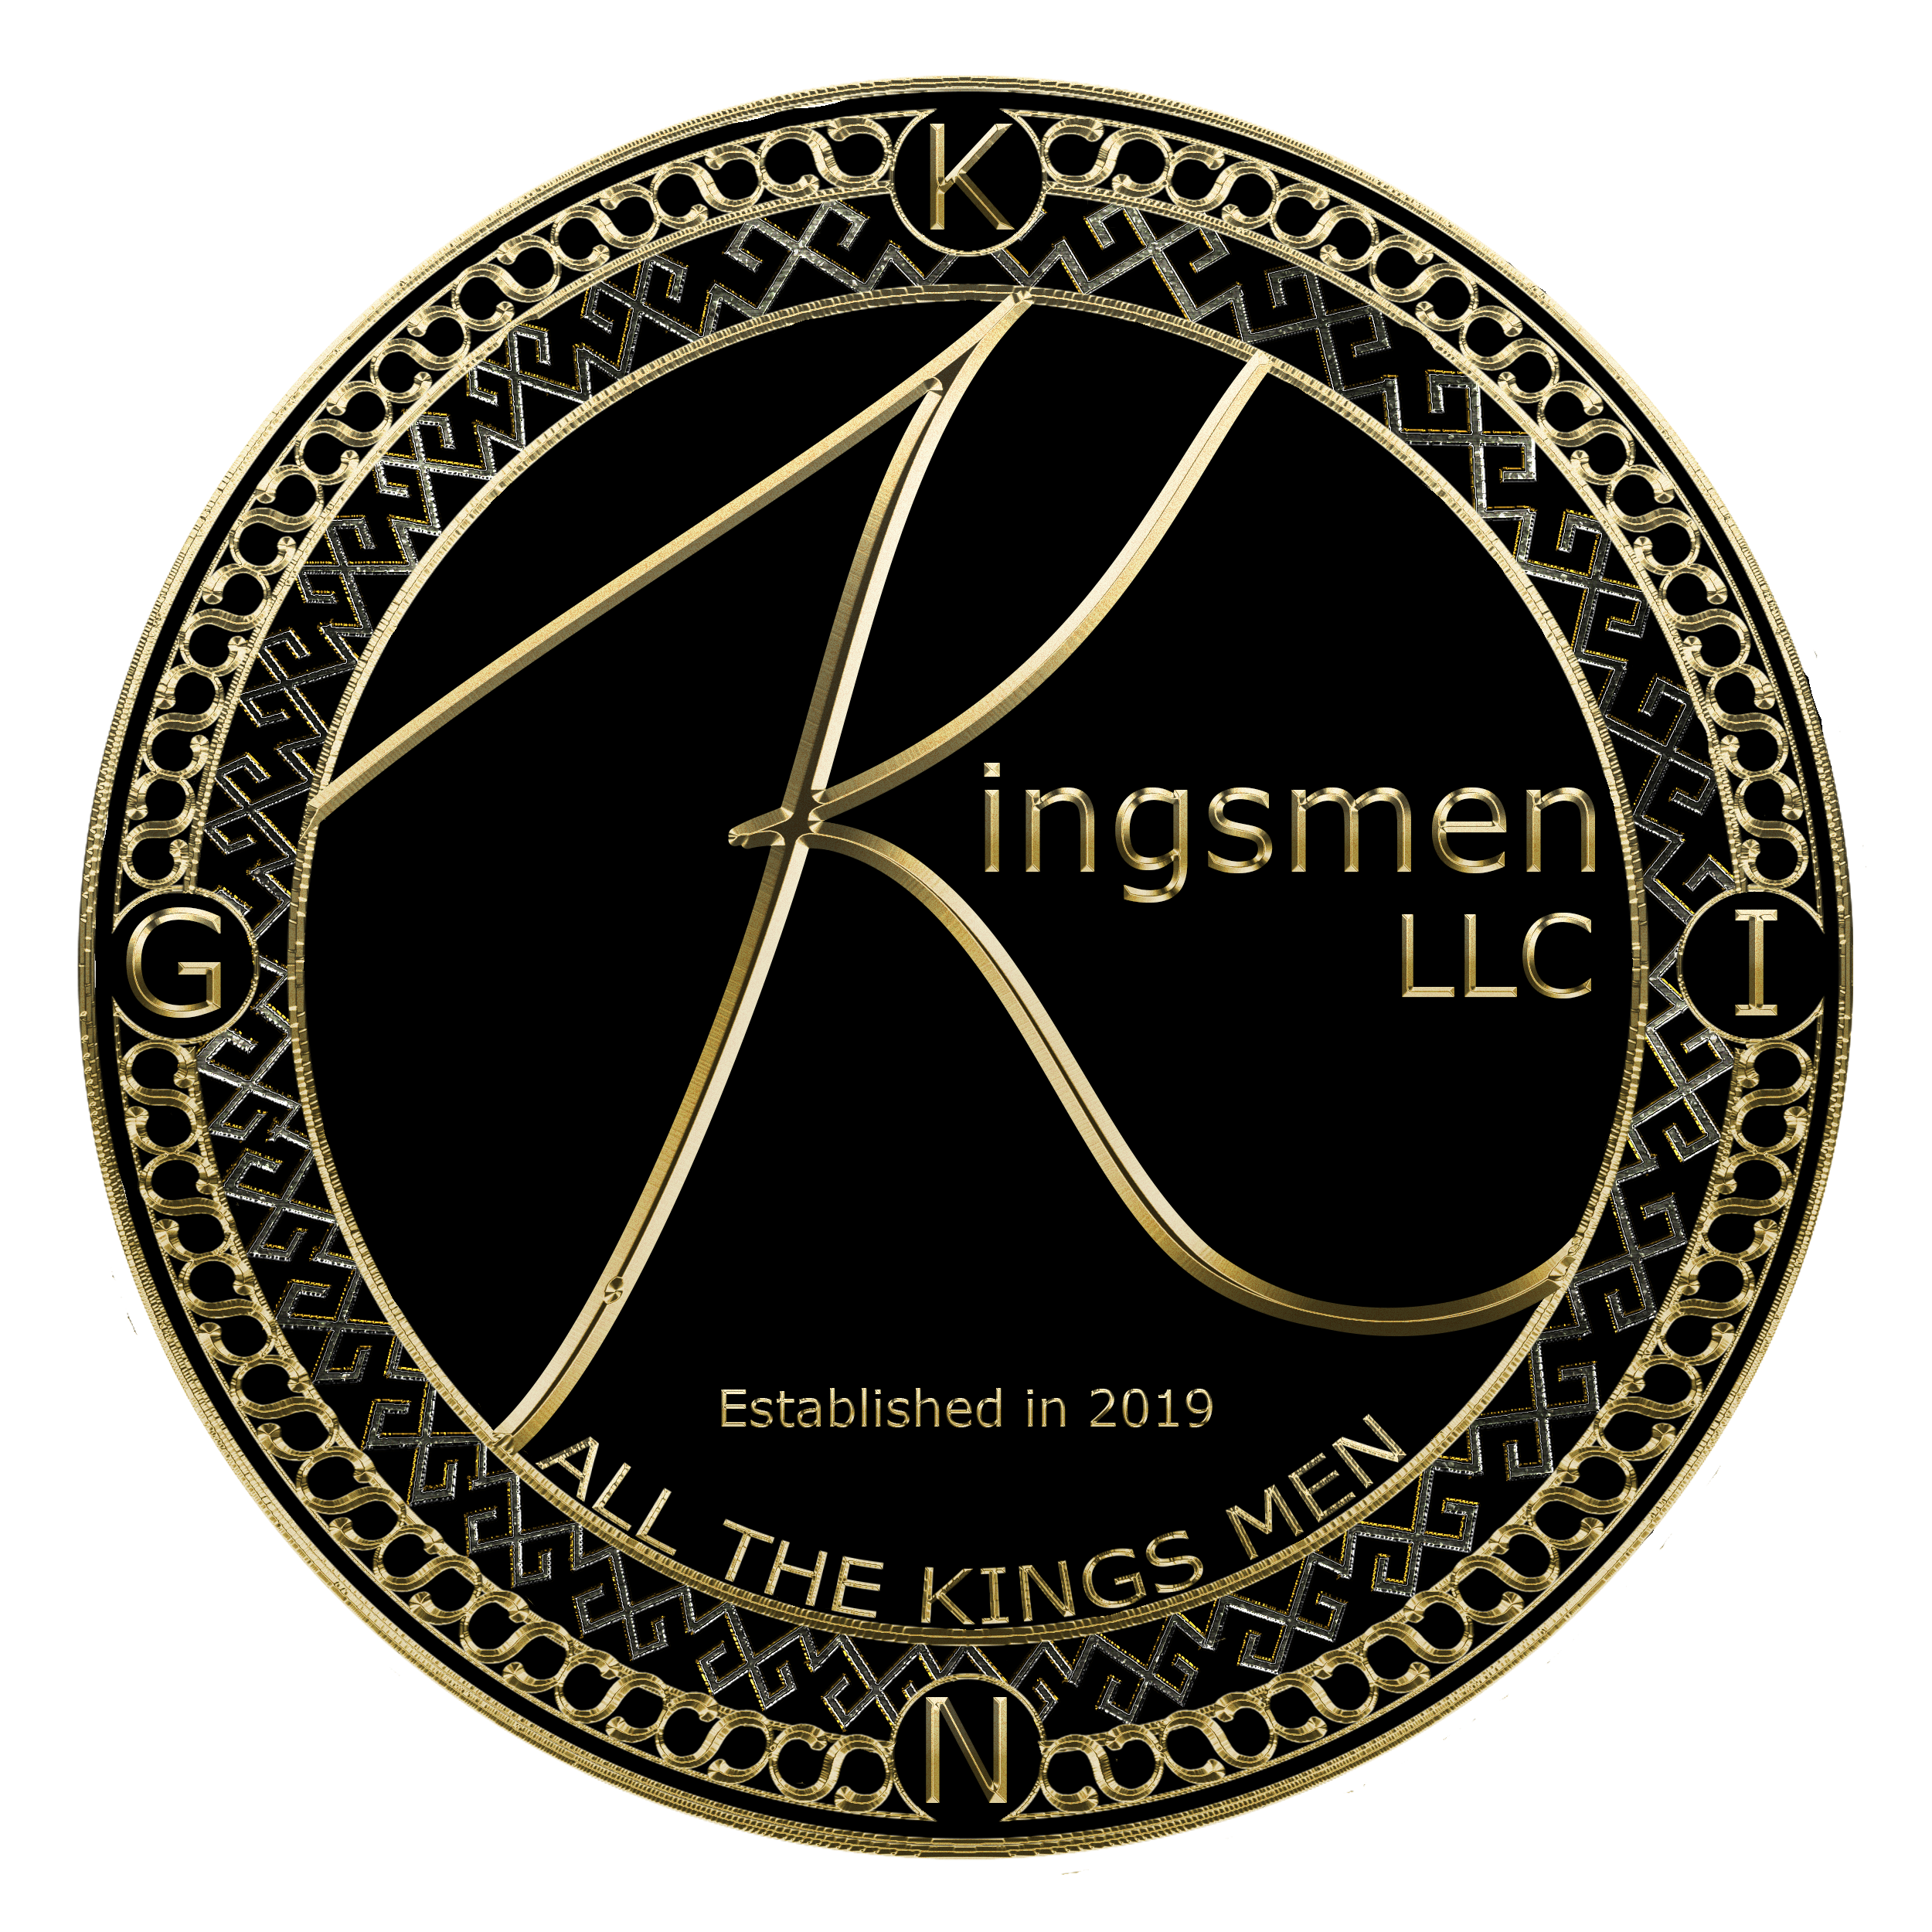 Kingsman LLC